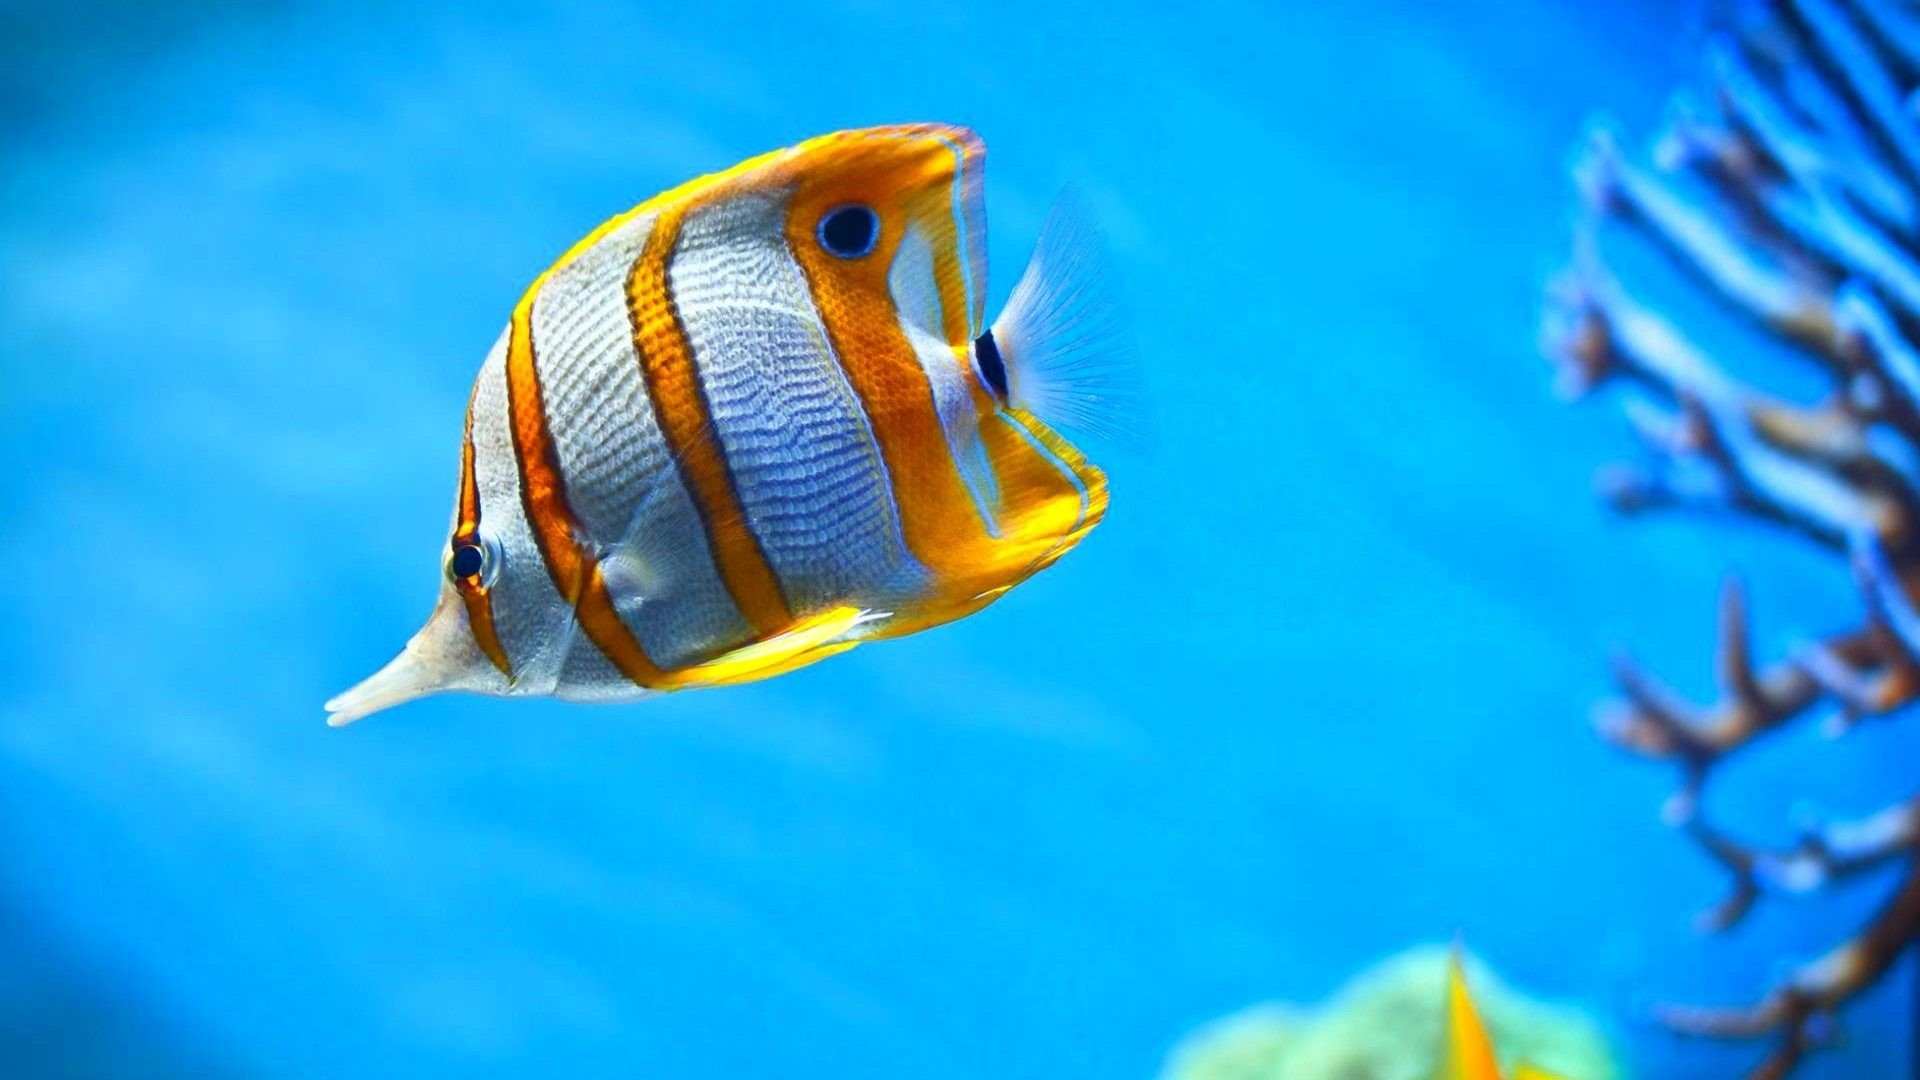 Res: 1920x1080, Fish Ocean Underwater Nature Sea Sealife Fishes Wallpapers Images